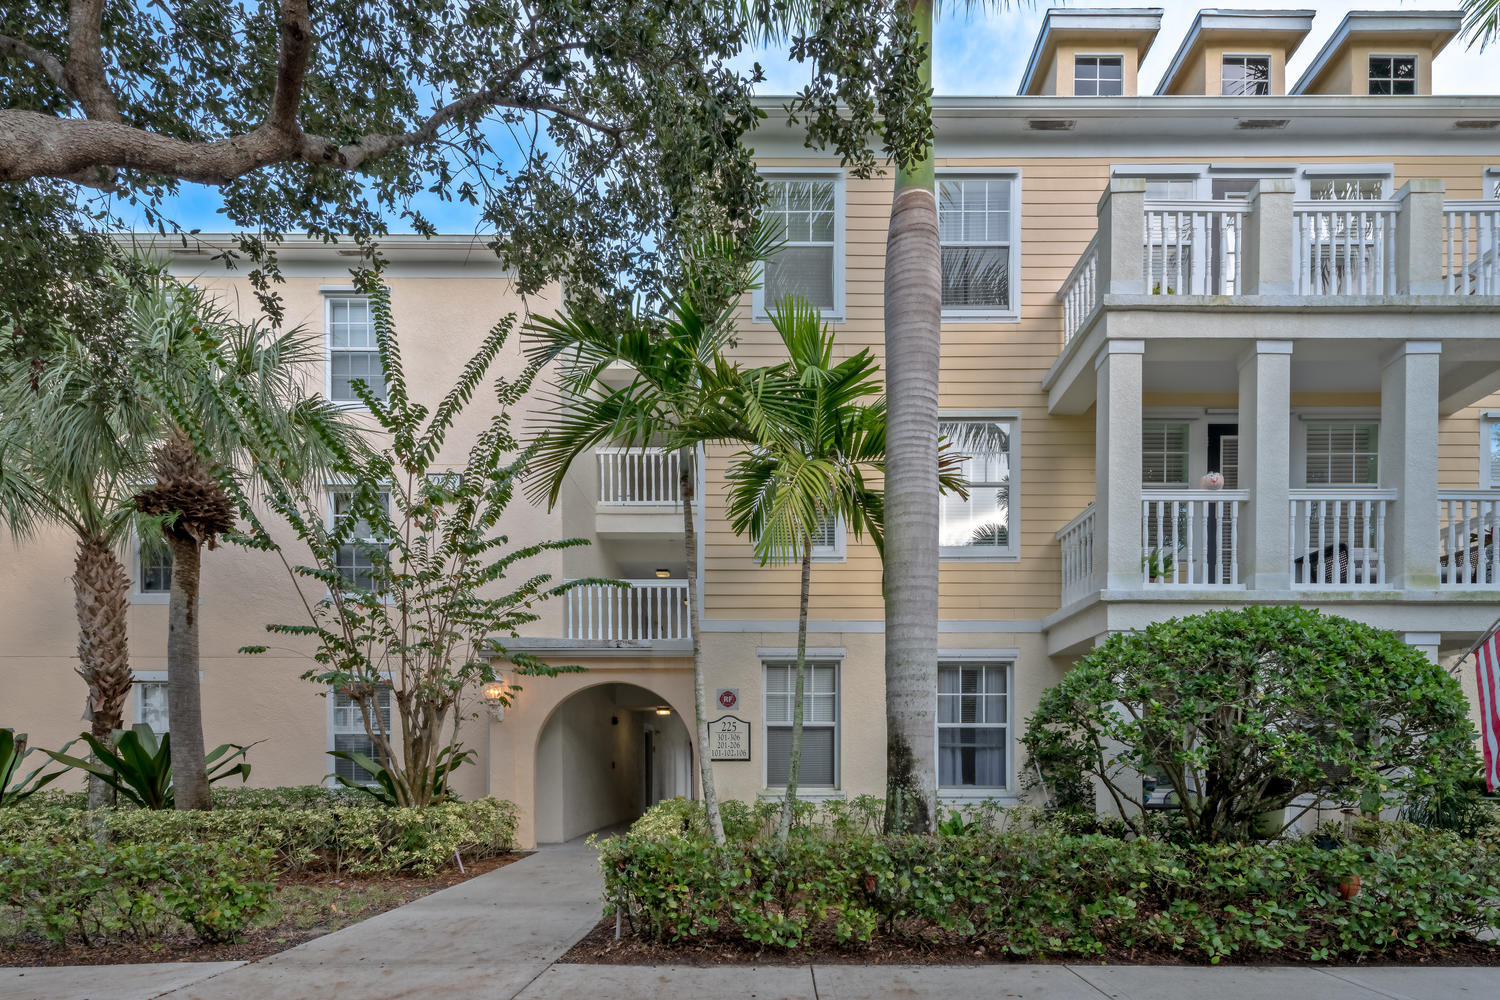 225 Murcia Drive 201, Jupiter, Florida 33458, 2 Bedrooms Bedrooms, ,2 BathroomsBathrooms,A,Condominium,Murcia,RX-10480993